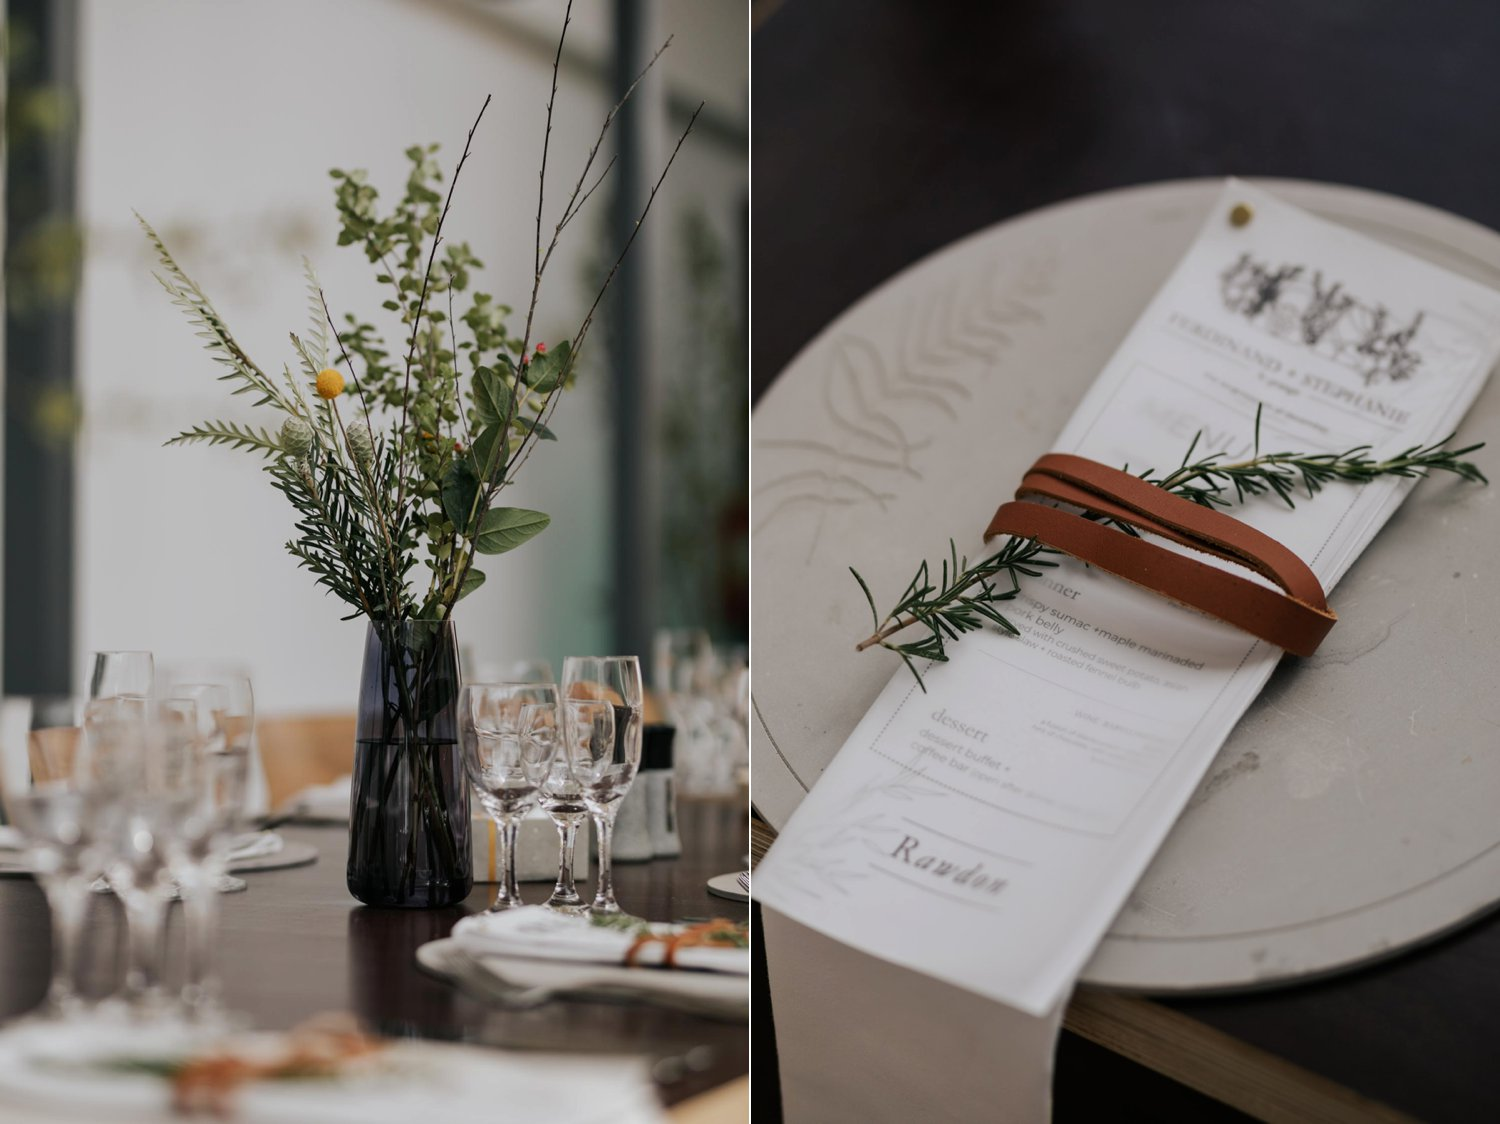 Wedding stationary and menu ideas with leather and rosemary details and black glass vases